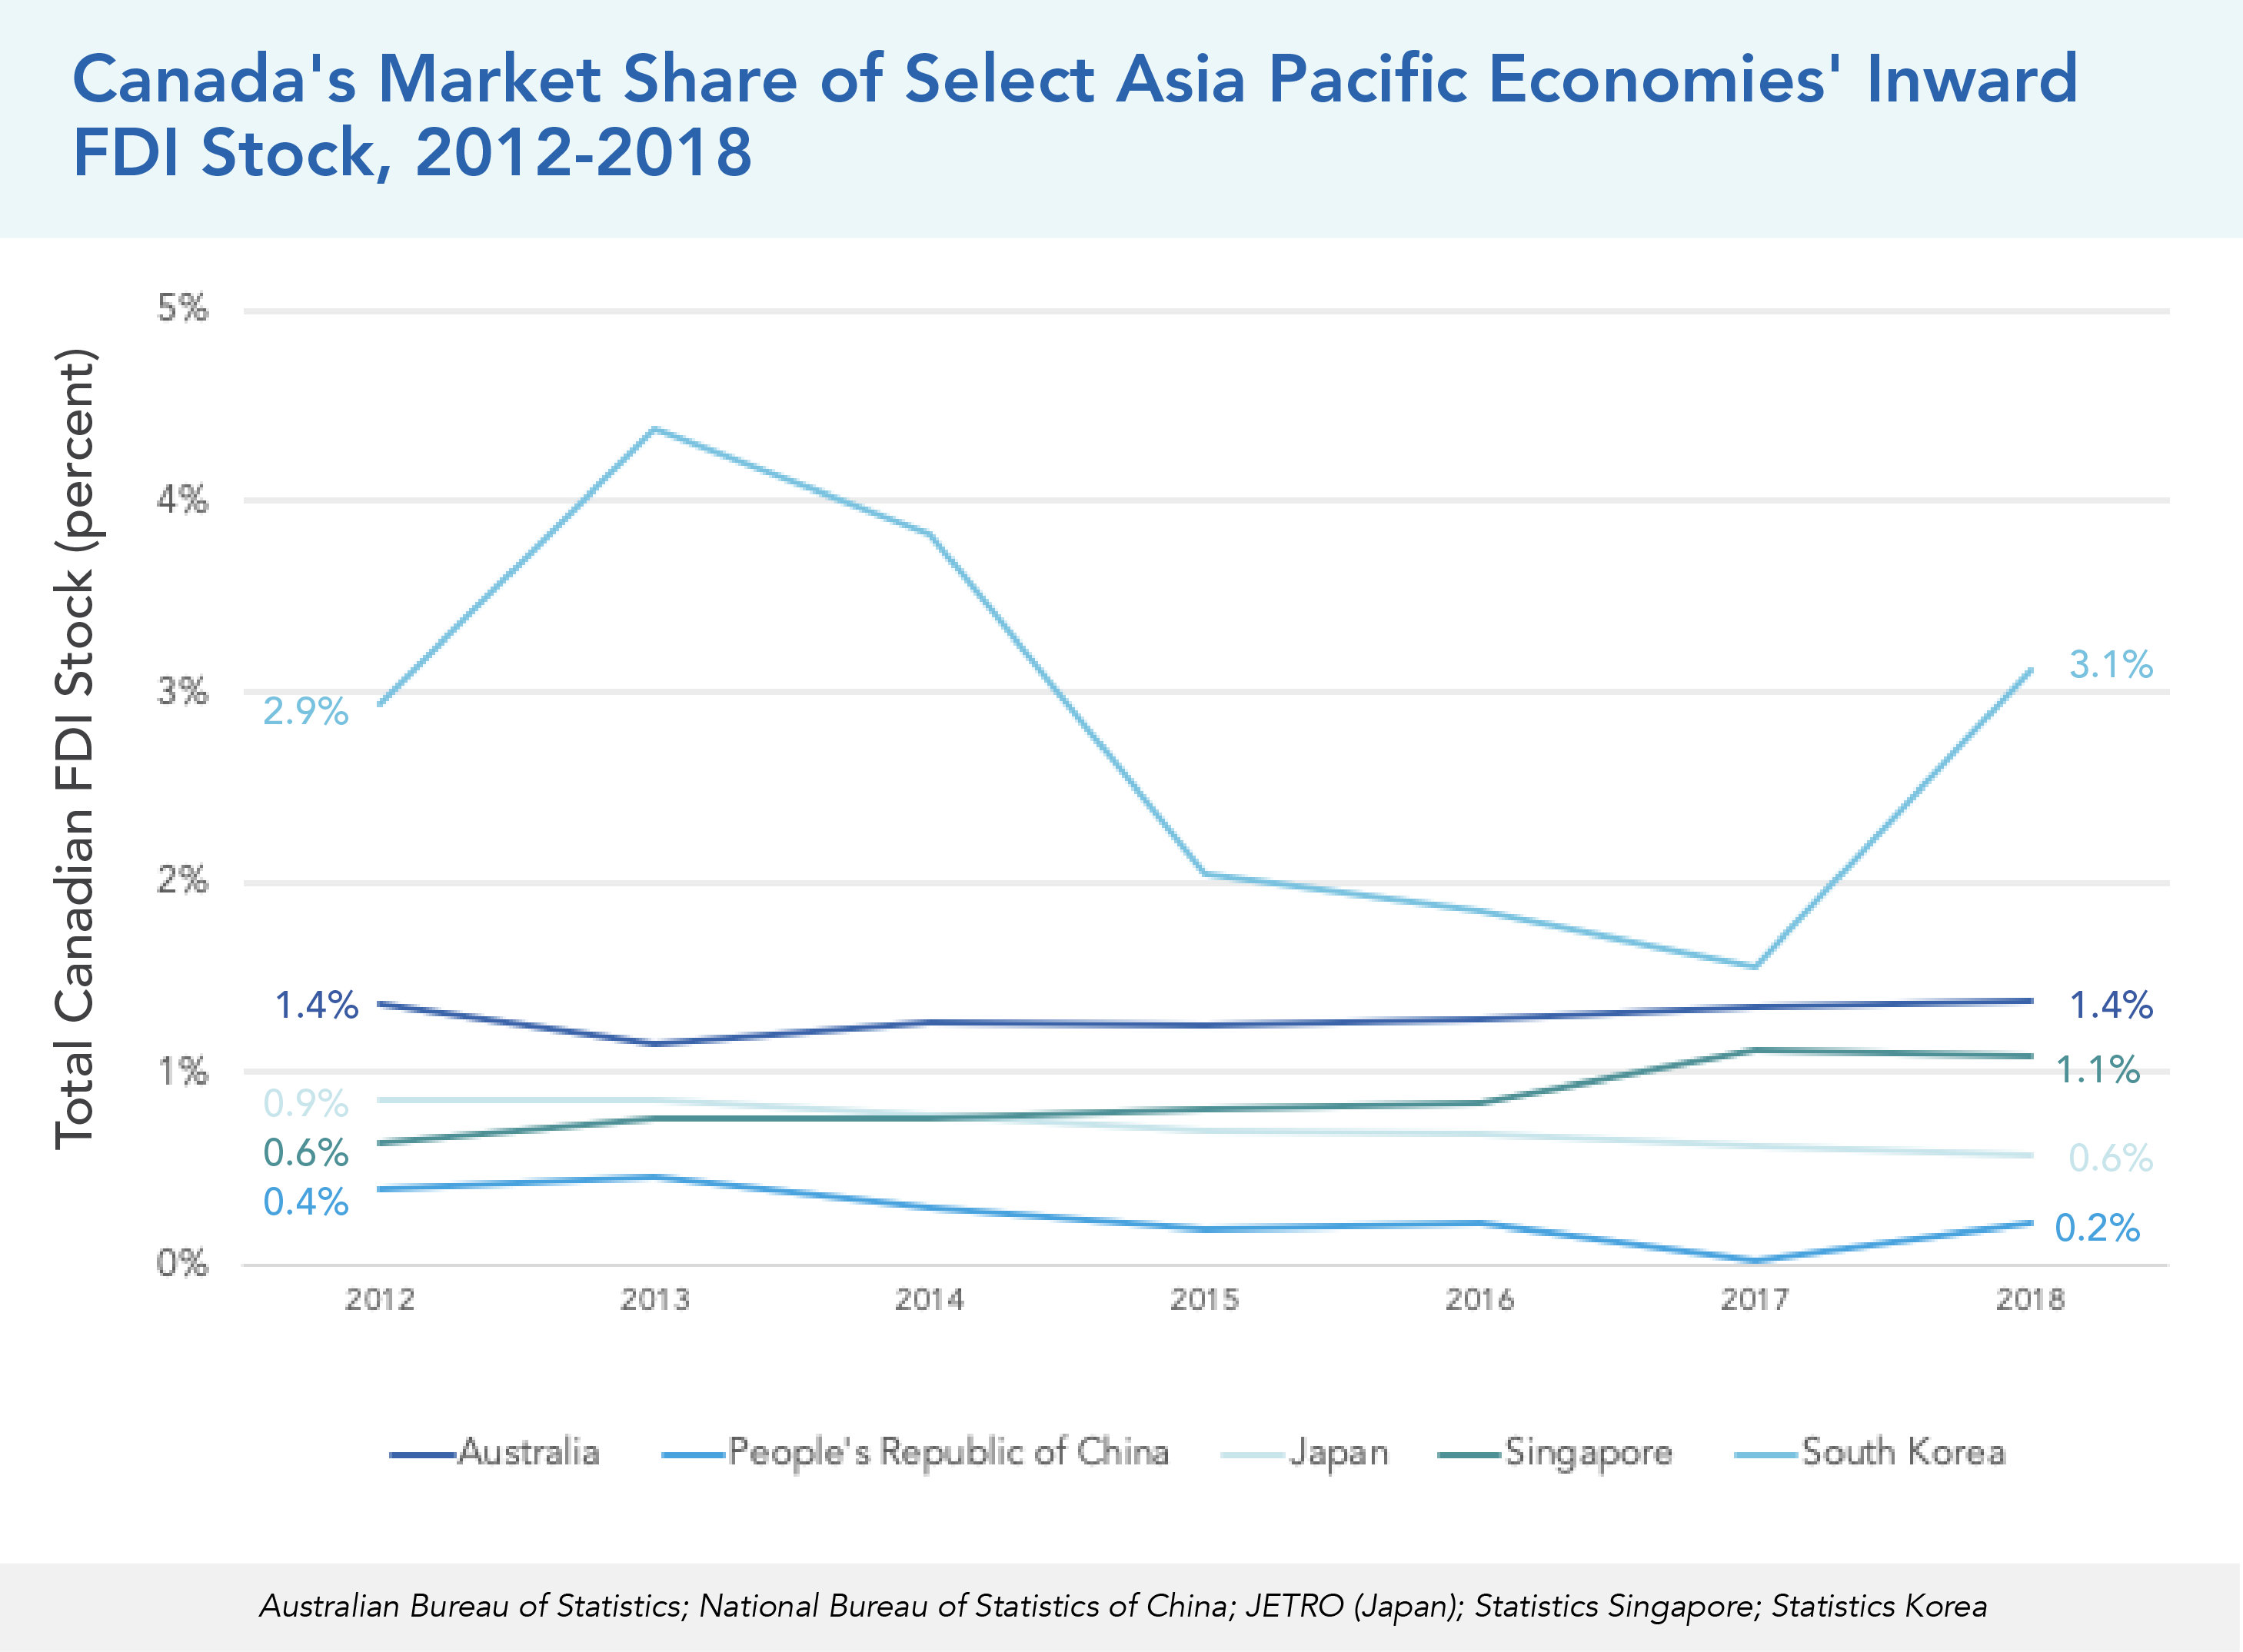 Canada's Market Share of Select Asia Pacific Economies' Inward FDI Stock, 2012-2018